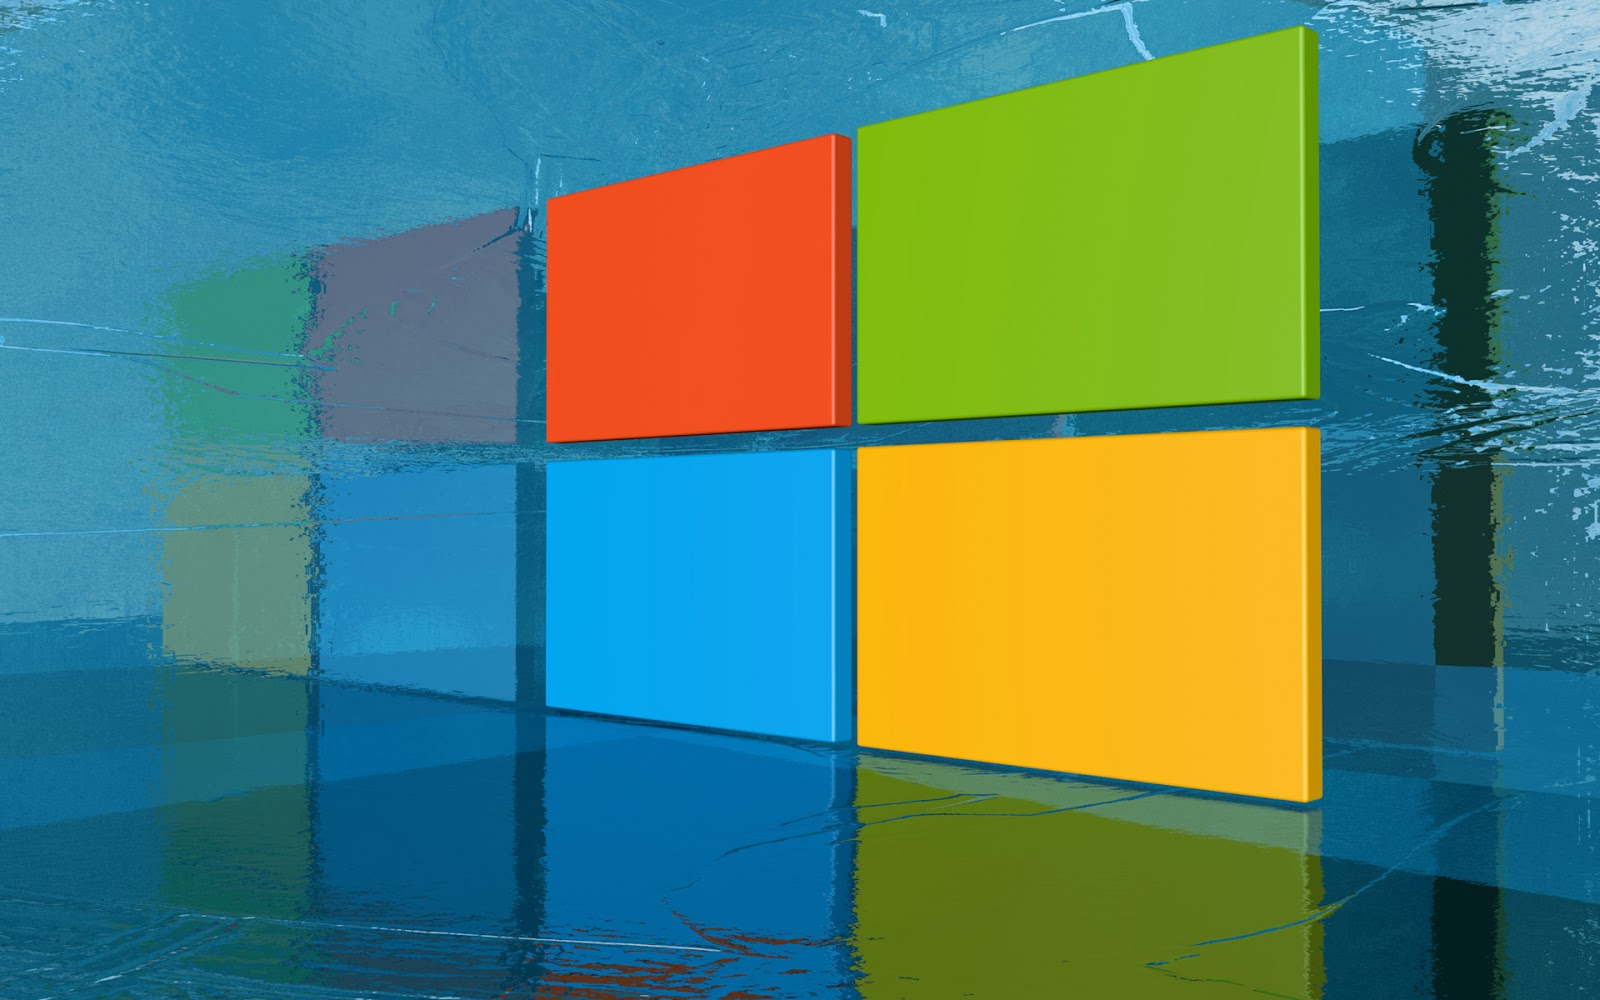 wallpaper 3d windows 8